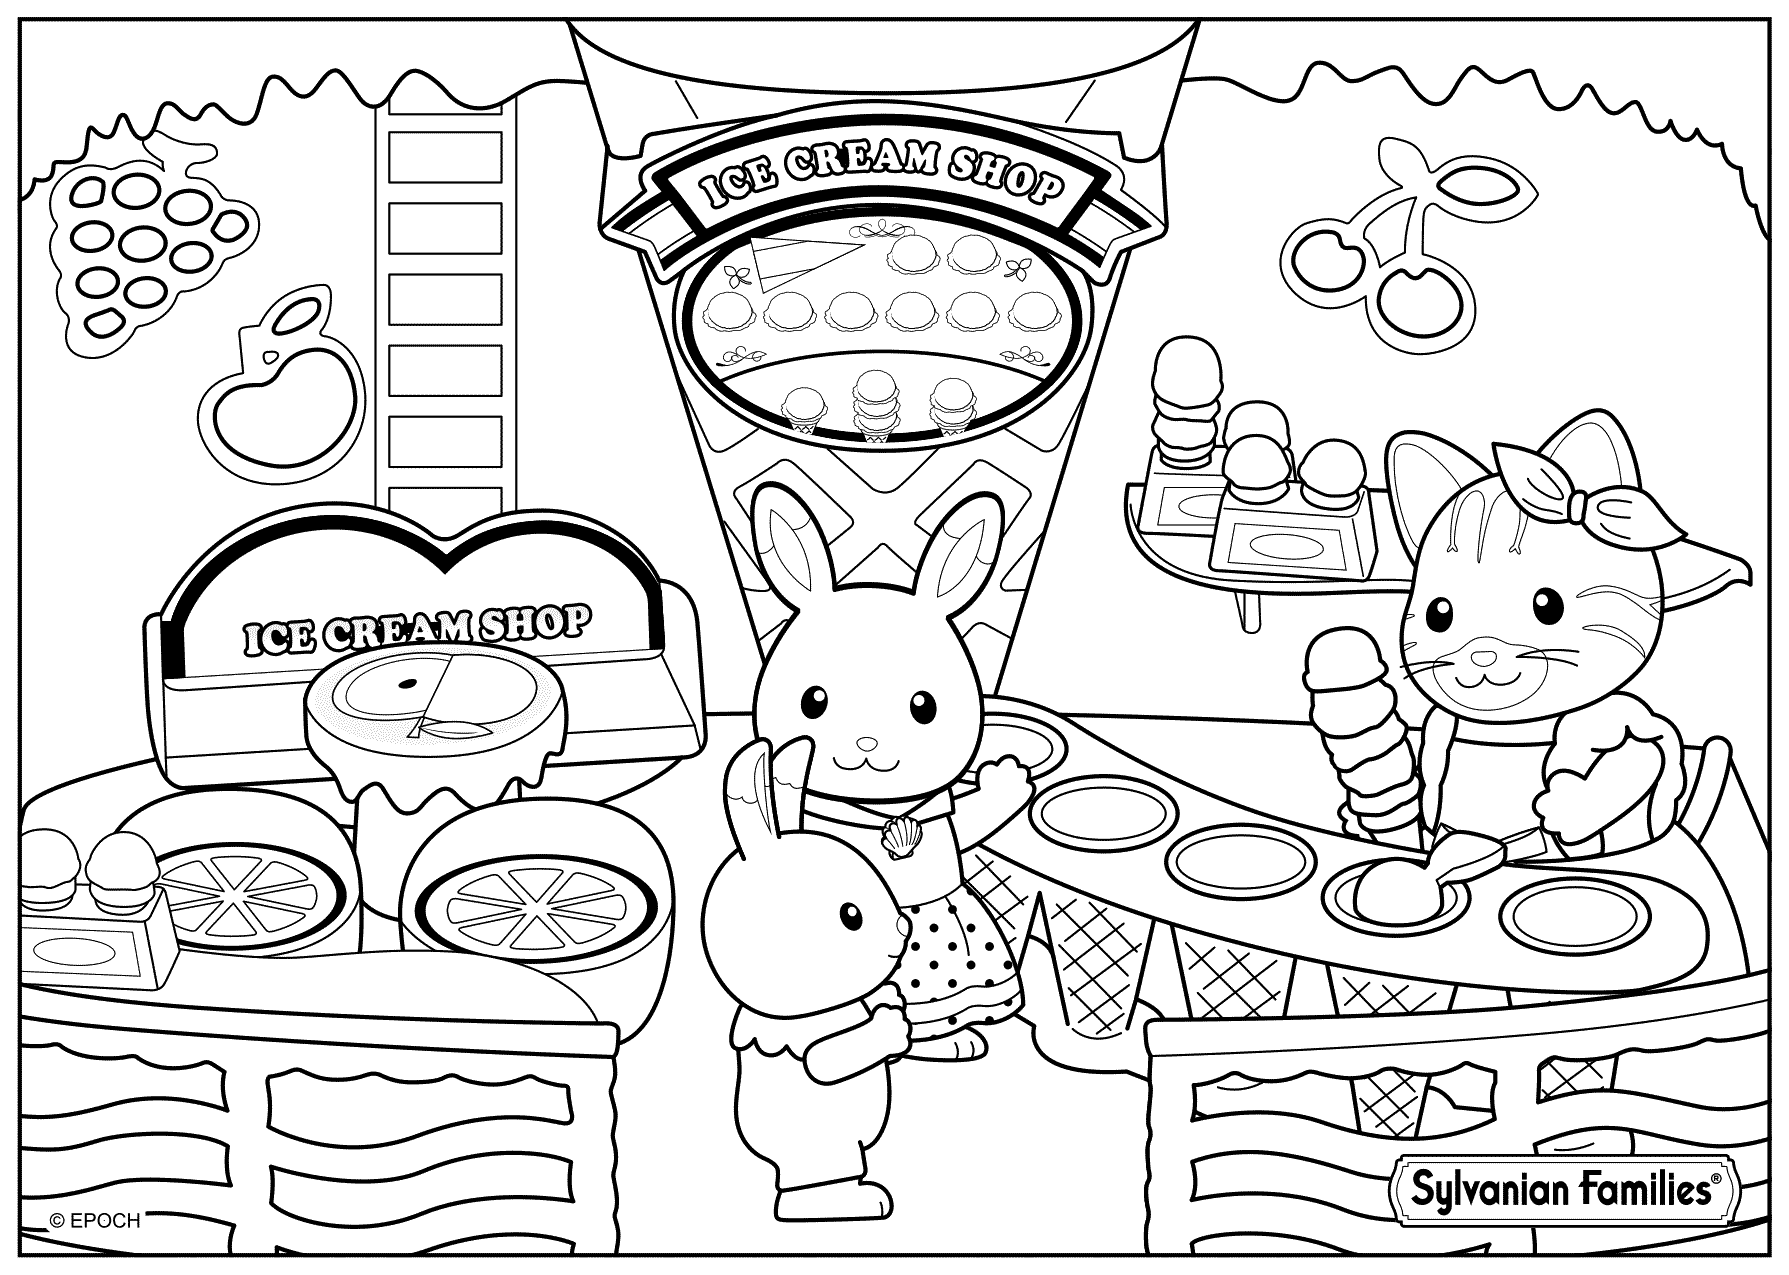 1789x1275 Ice Cream Shop For Sylvanian Families Coloring Pages